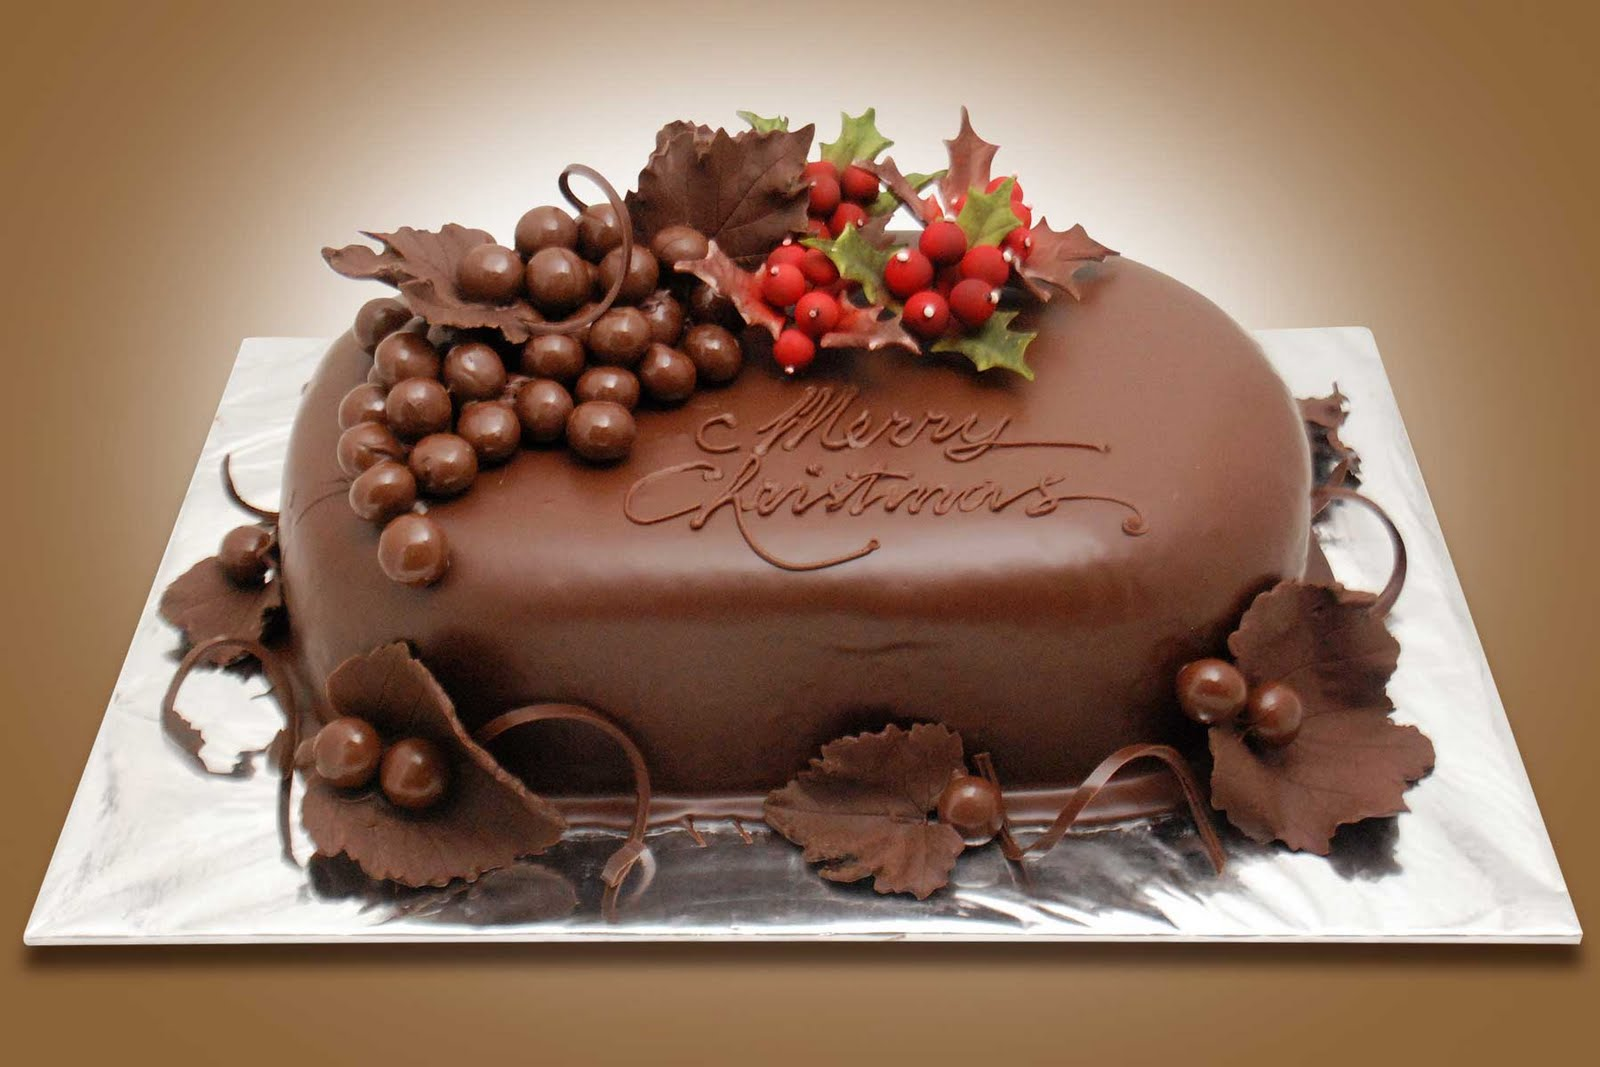 Cake Artist Cakes : 1000+ images about Chocolate Cakes & Pastries on Pinterest ...